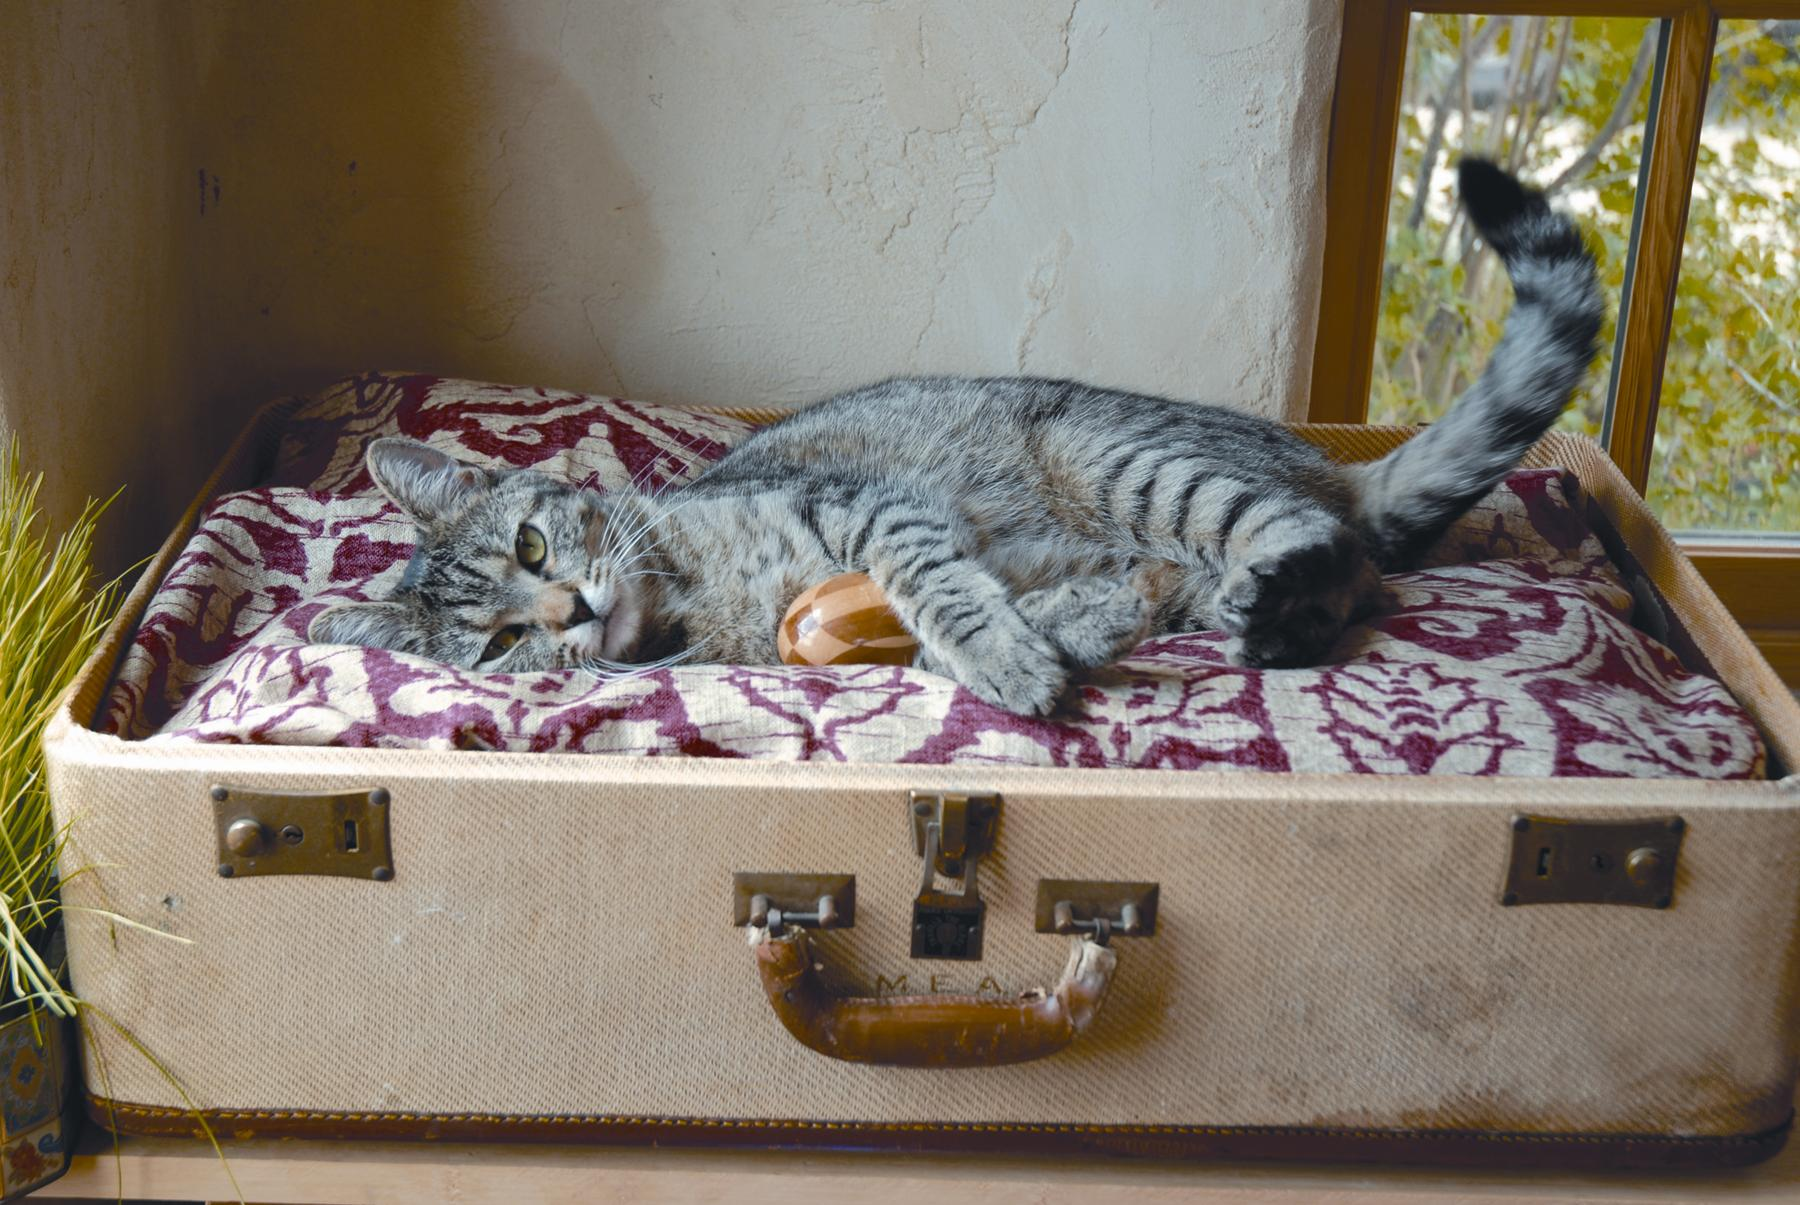 crafta la vista - Diy Shabby Chic Pet Bed